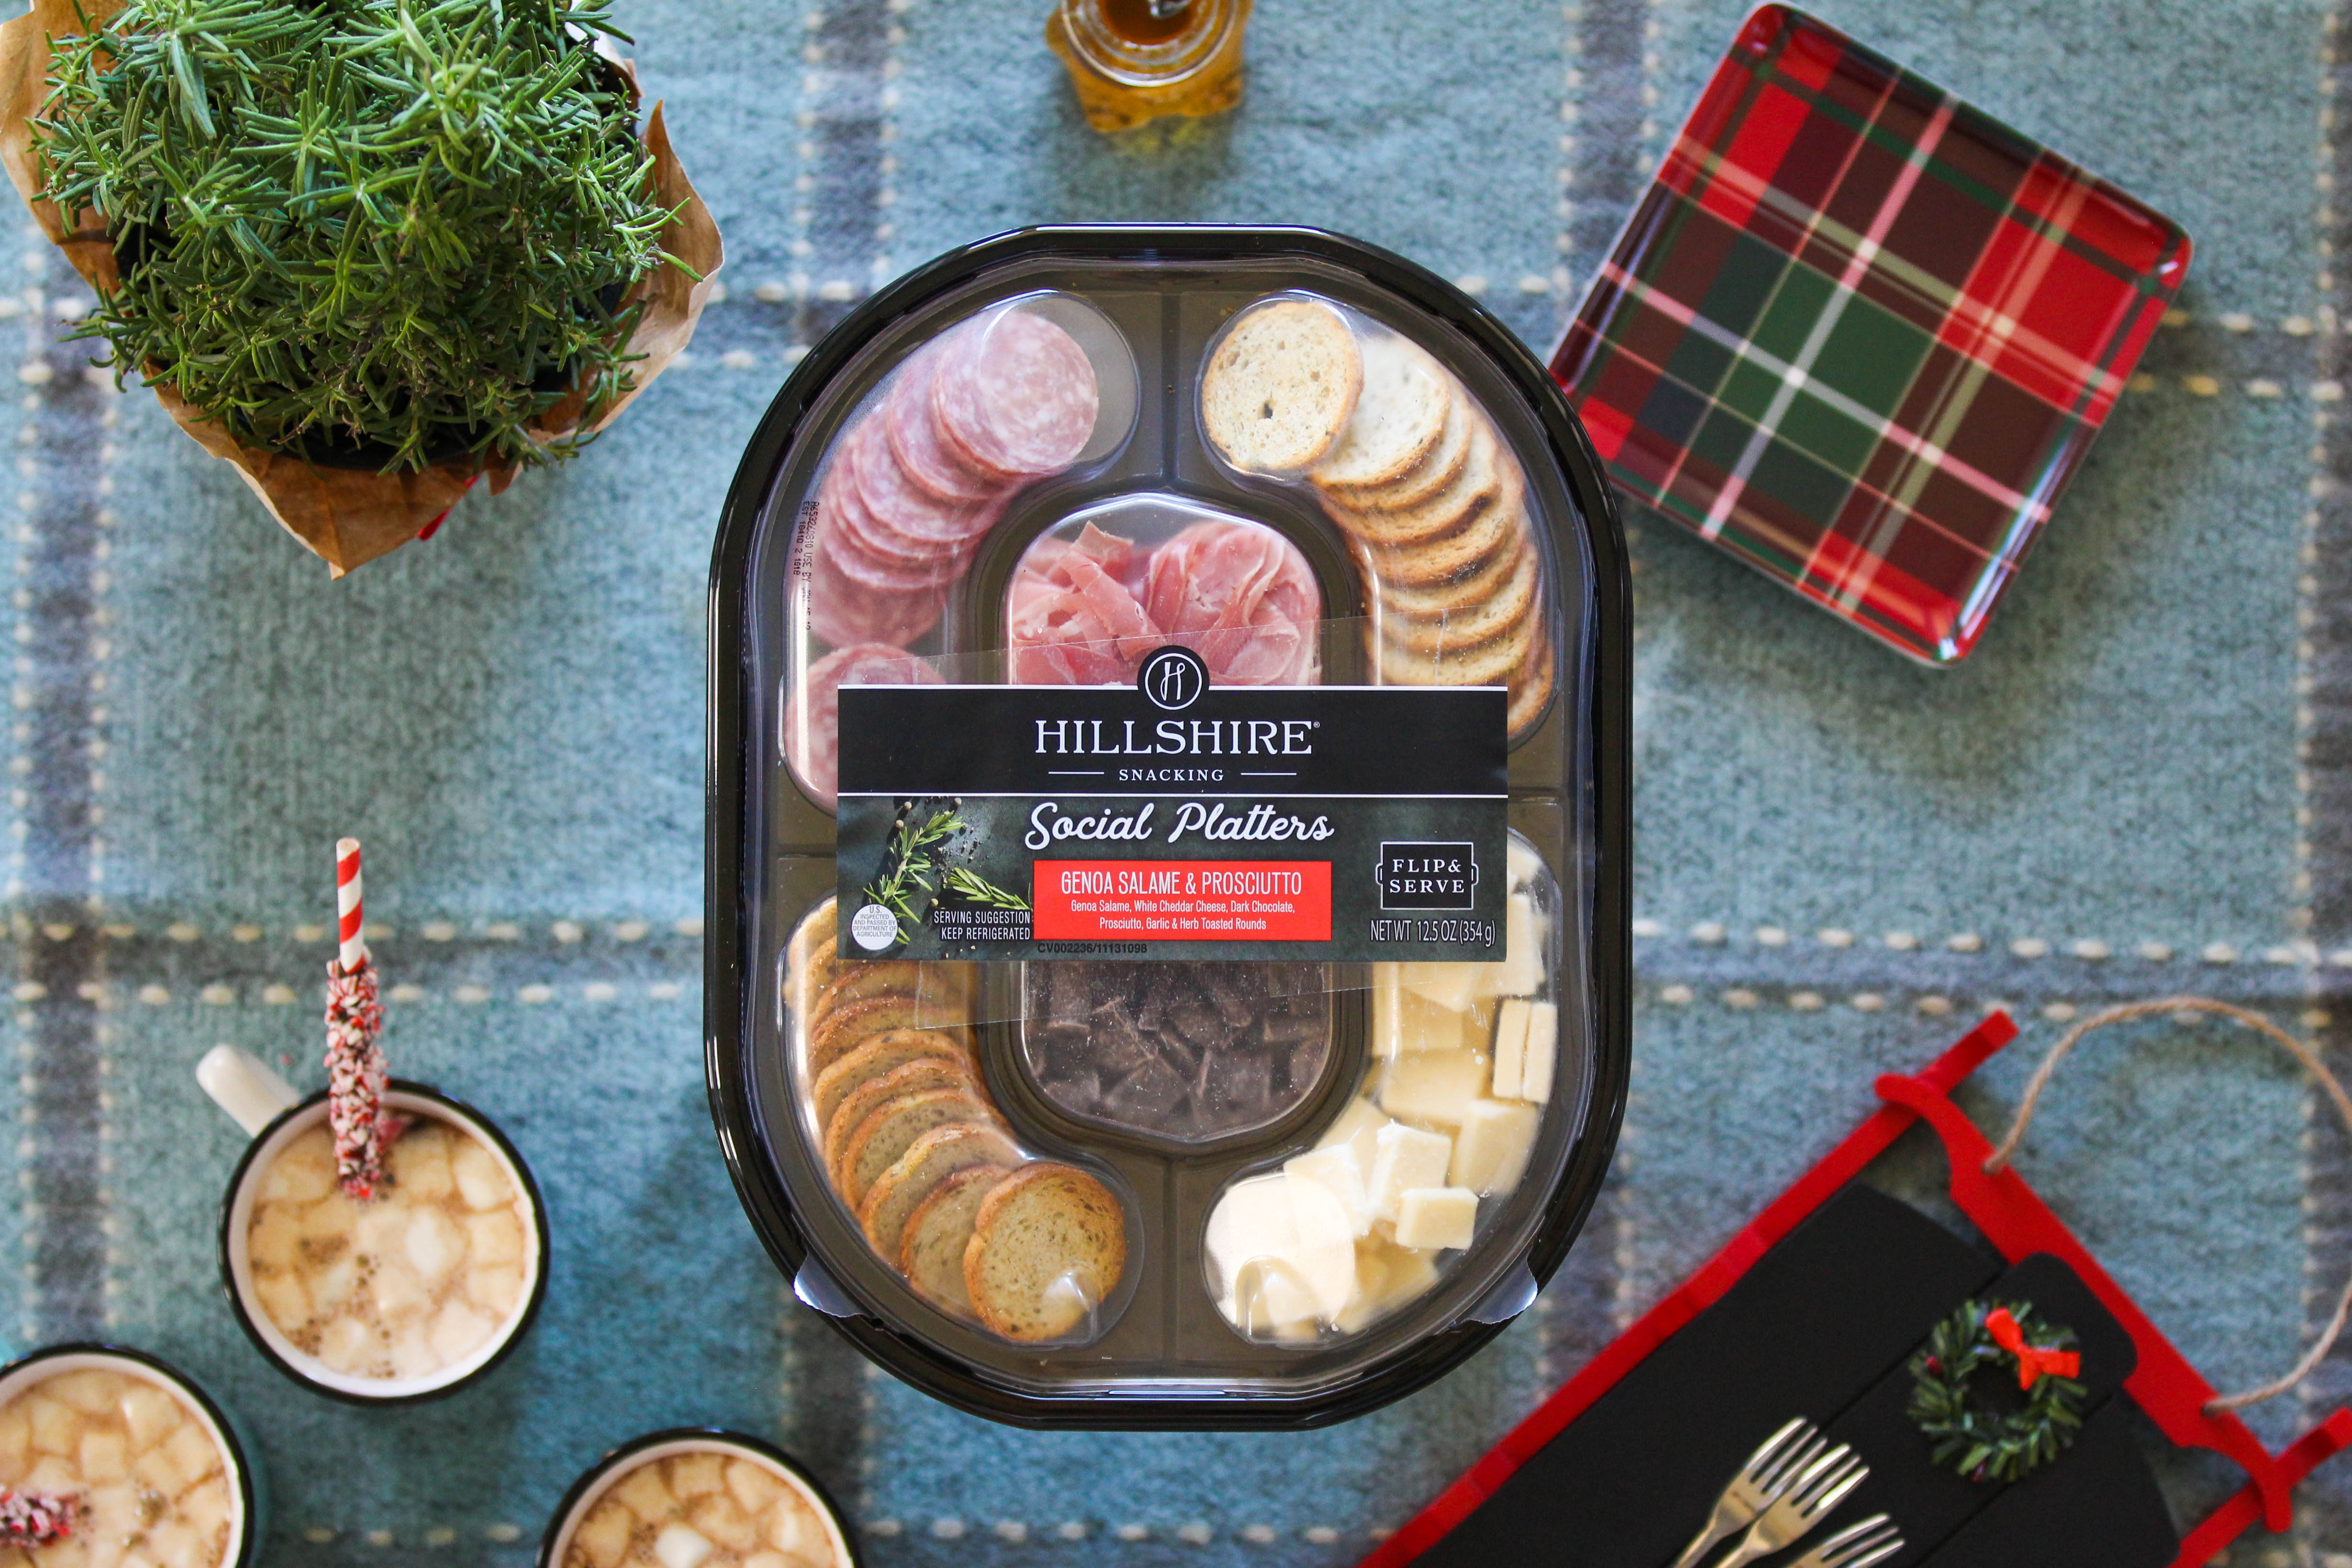 Entertaining Hack - Hillshire Social Snacking Platters